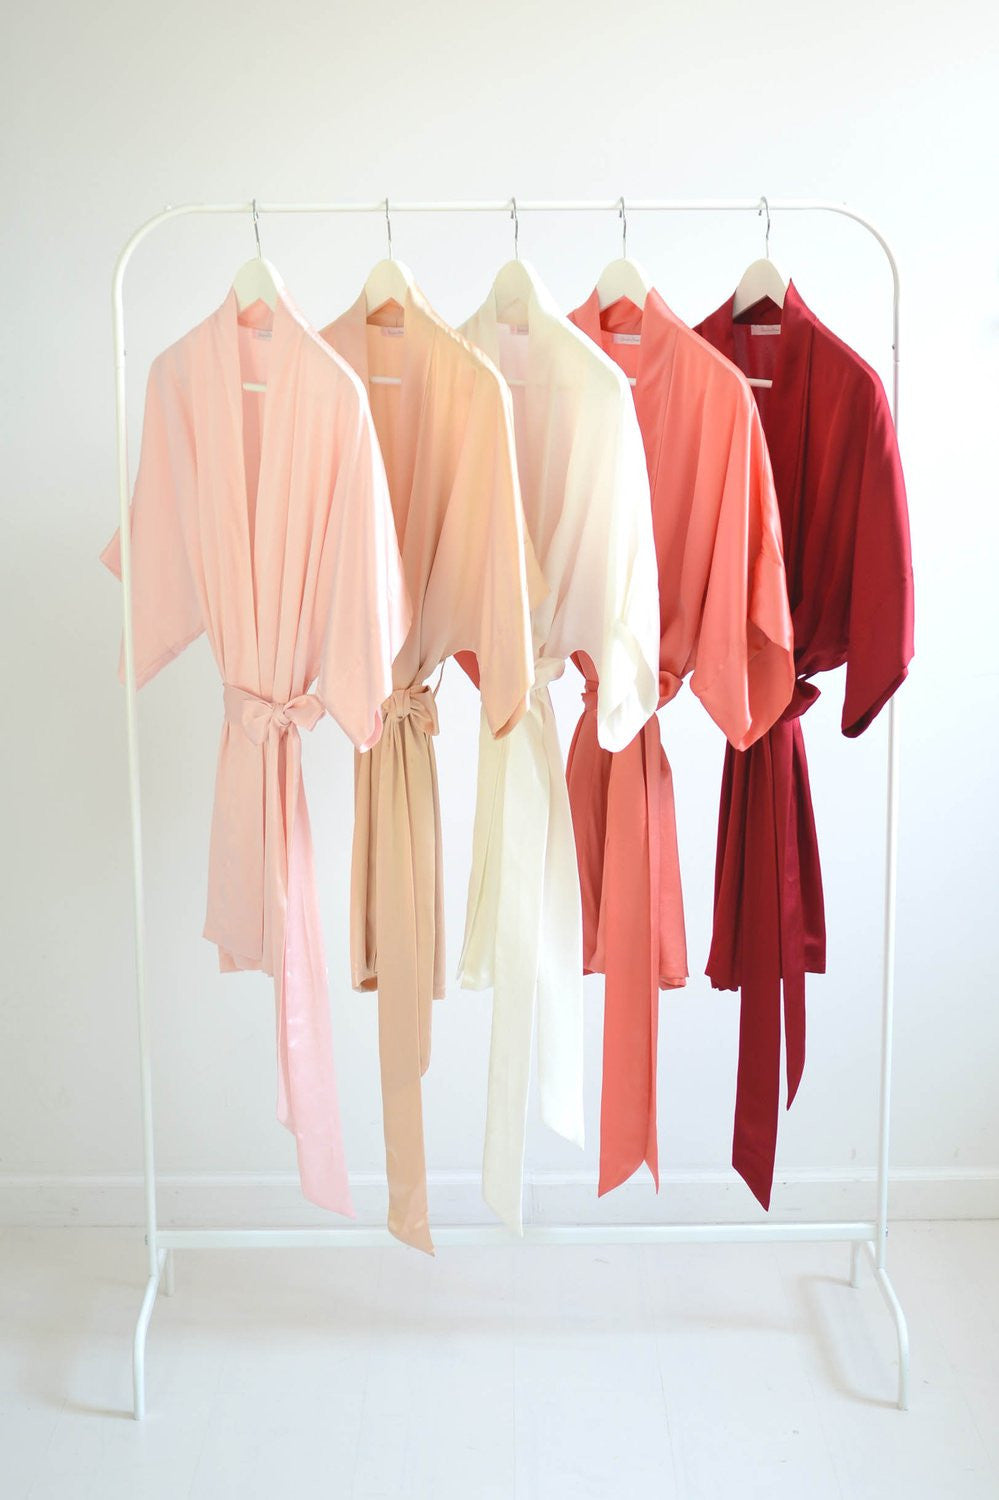 Samantha bridal silk kimono robe bridesmaids robes in Strawberries & Cream colors - style 300